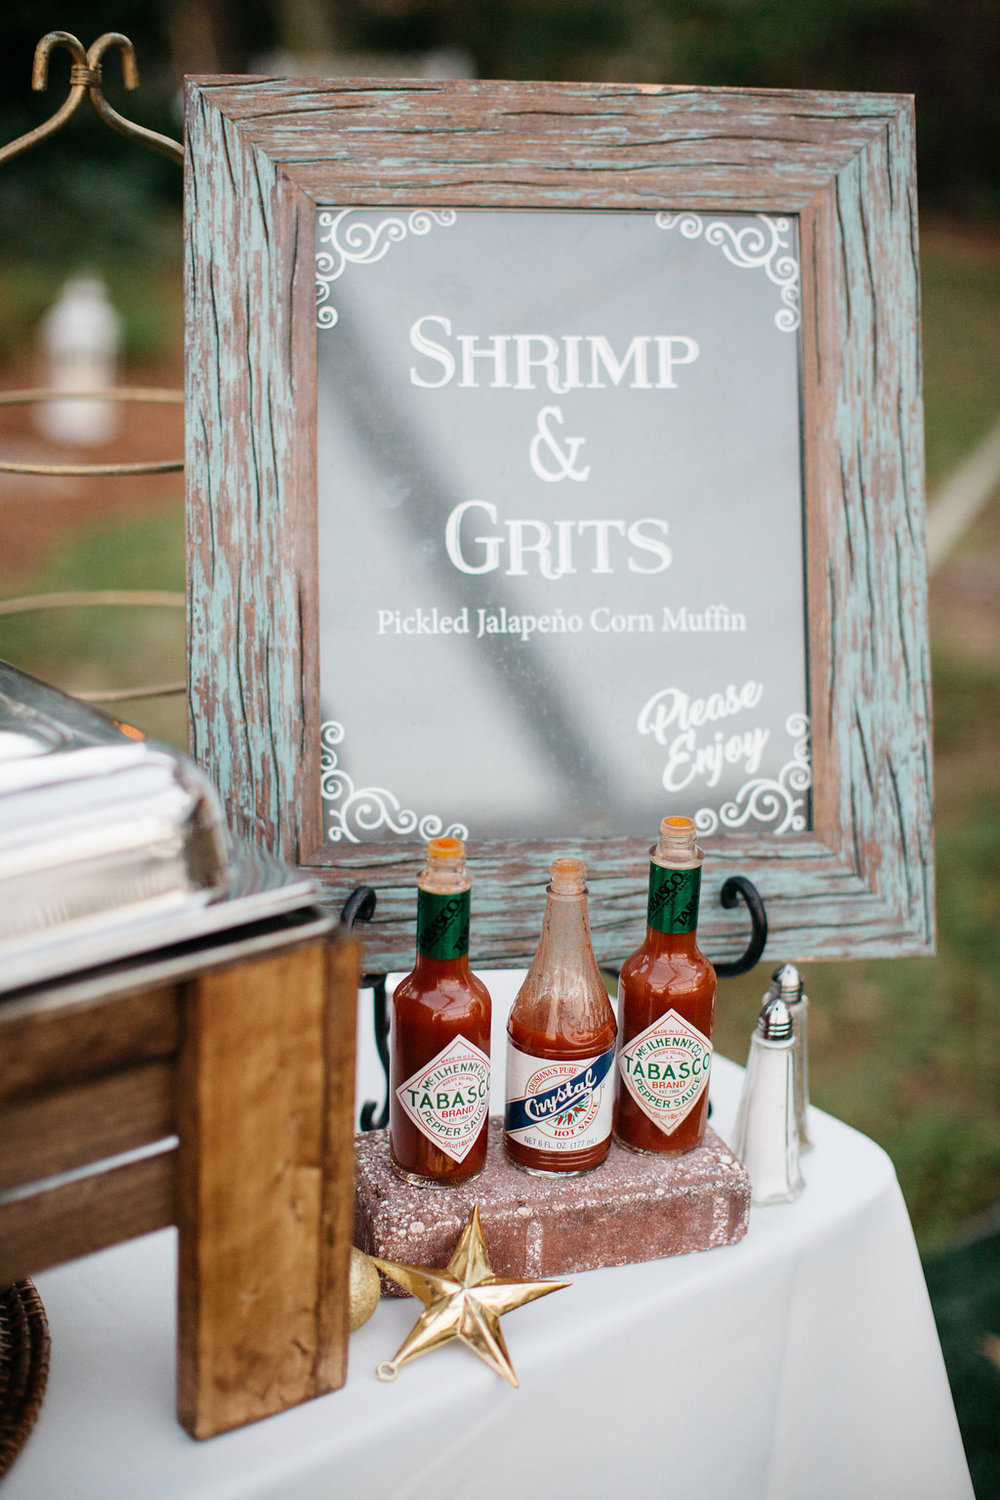 Savannah's shrimp and grits, reception dinner favorites